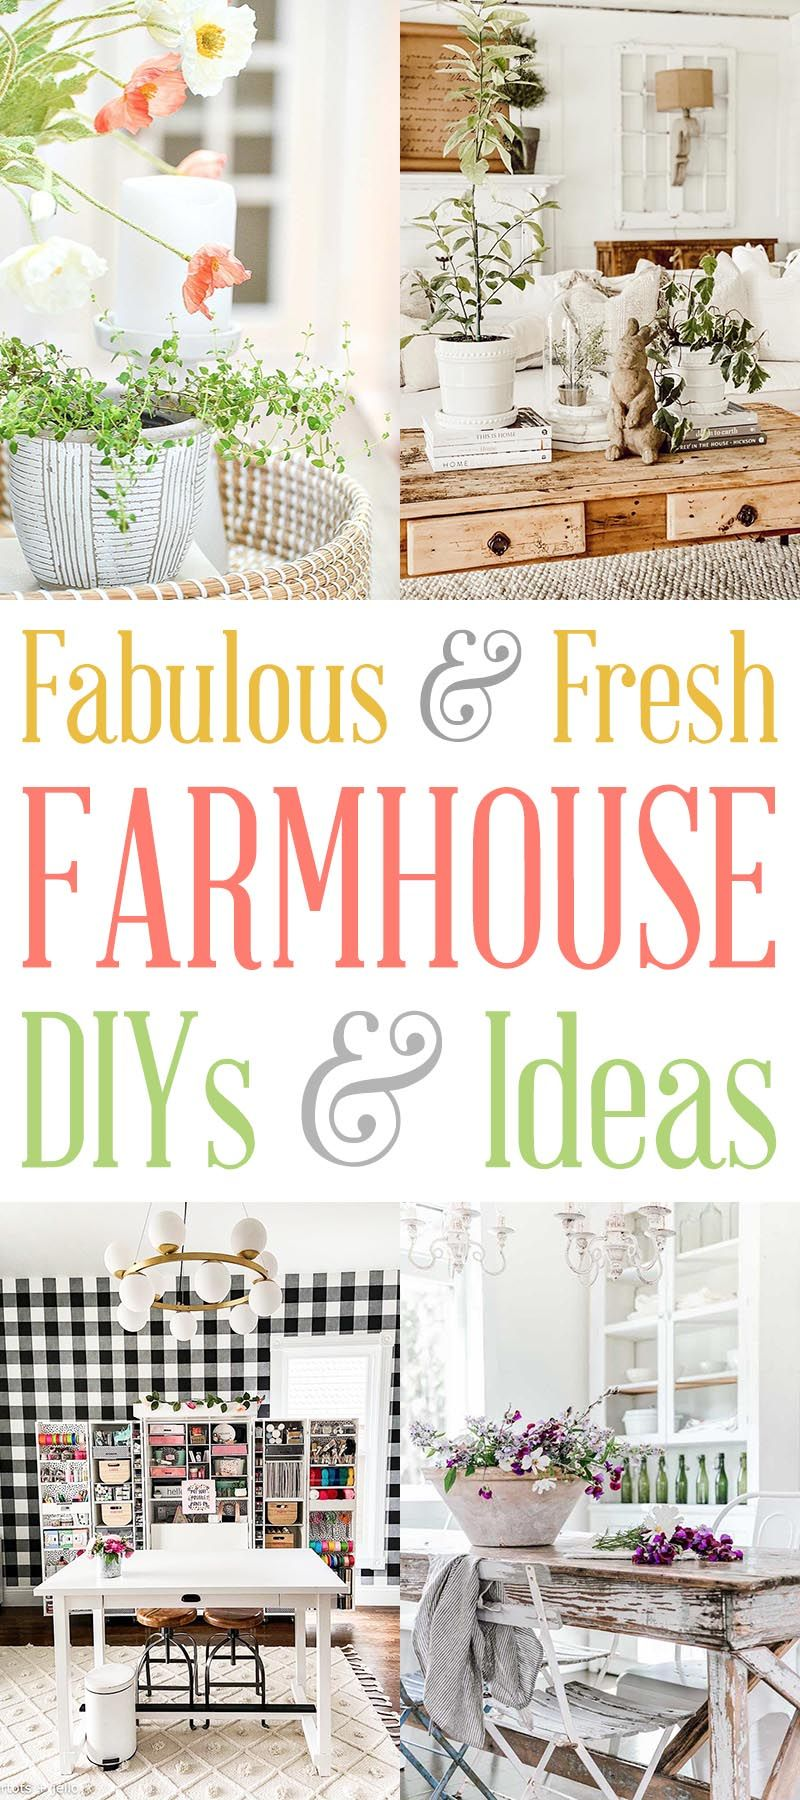 Pin on Rustic & Farmhouse Living